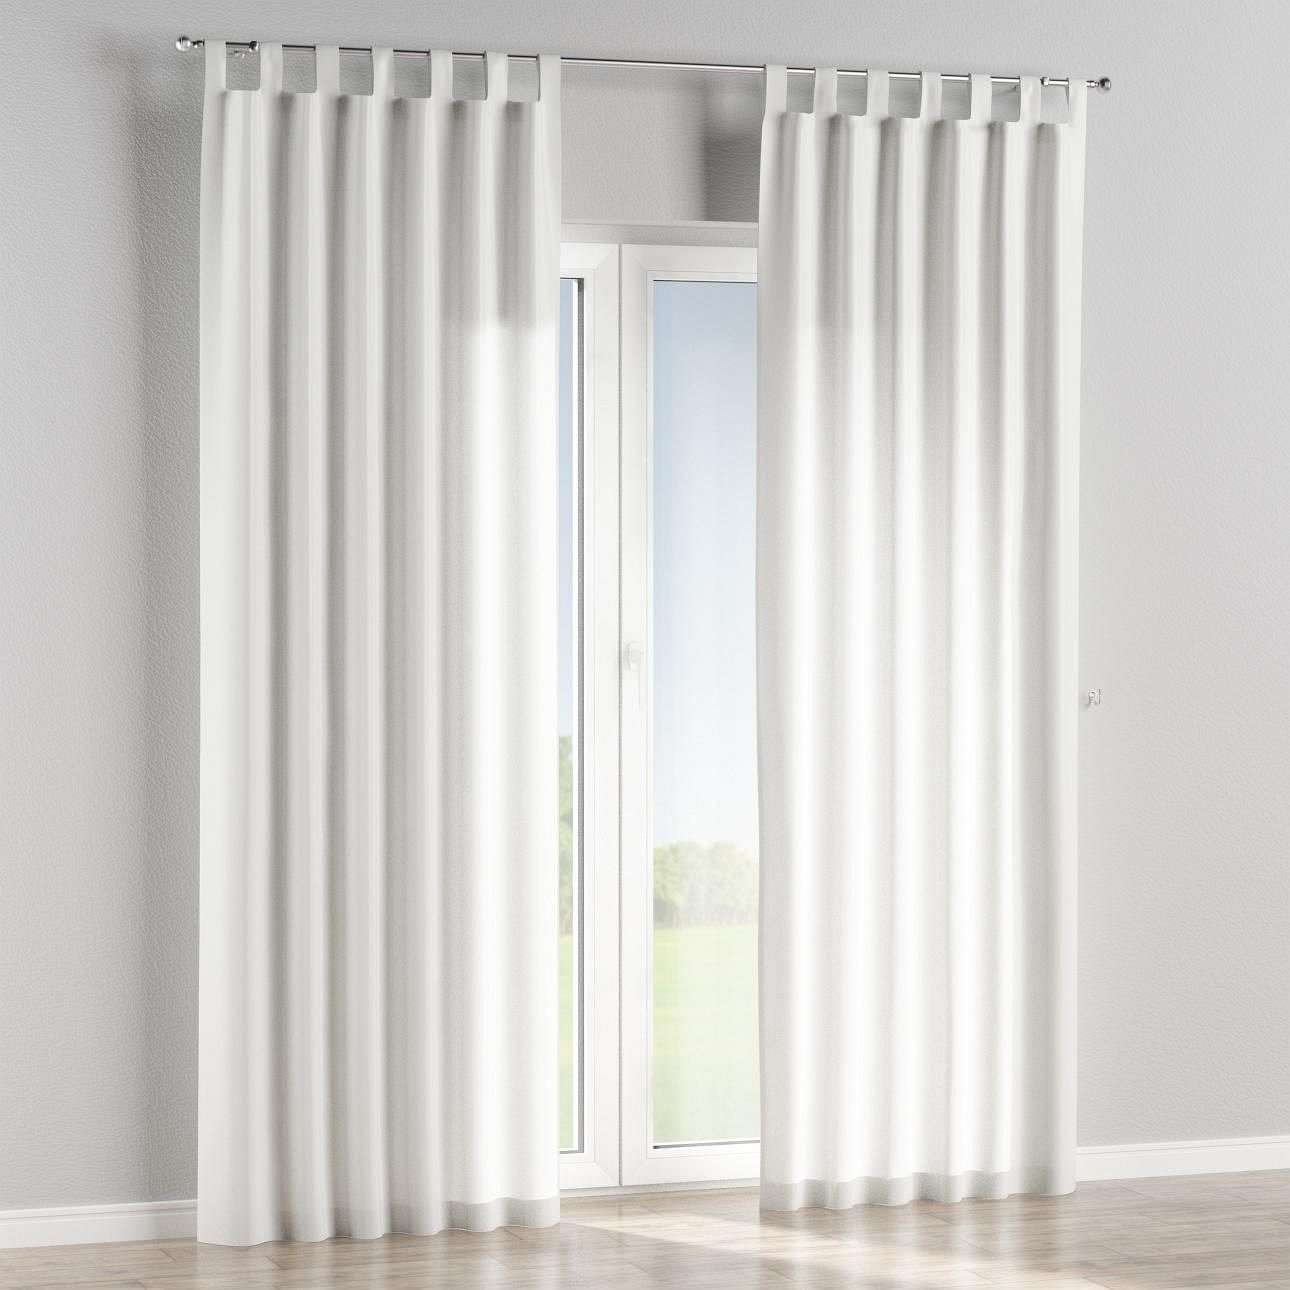 Tab top curtains in collection Bristol, fabric: 125-48